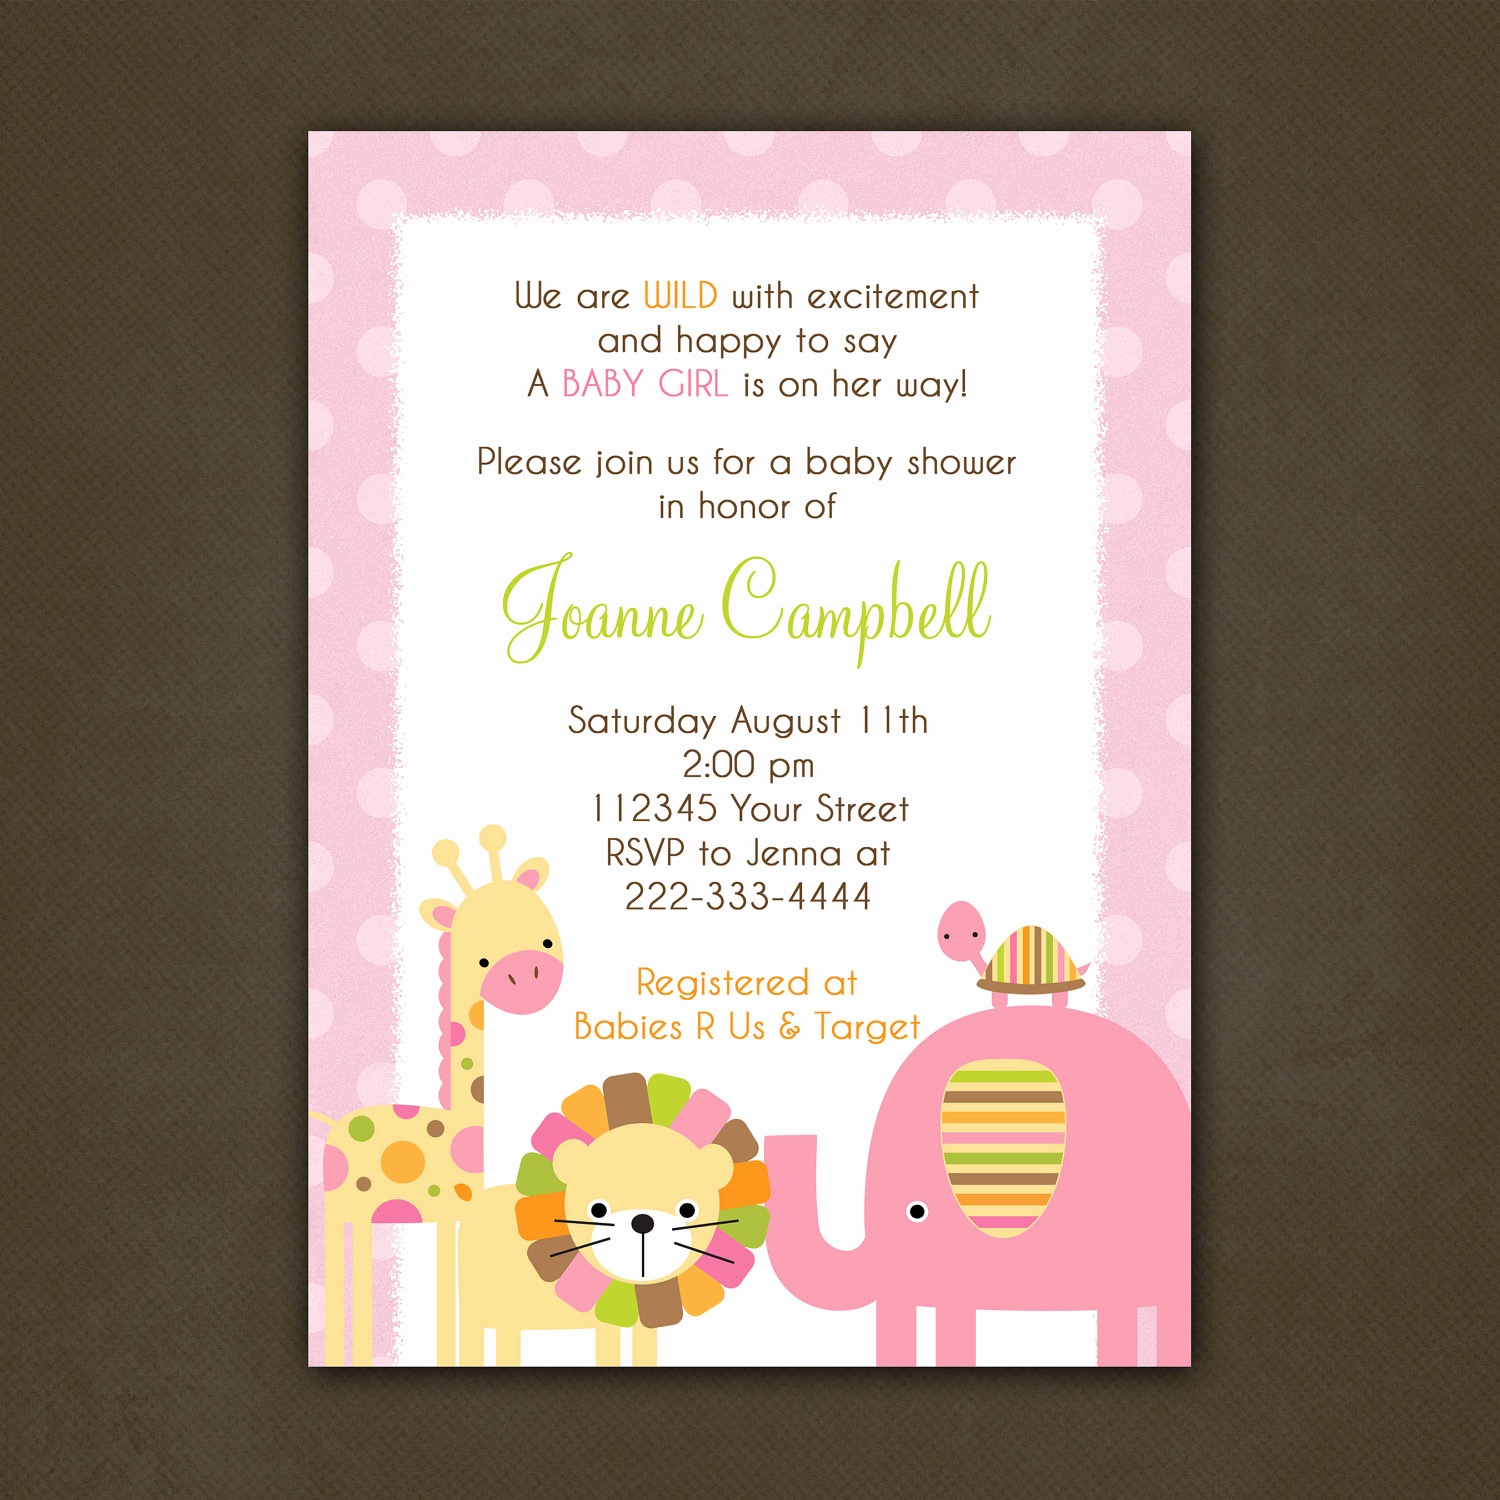 Baby Shower Invitation Message Fresh Baby Shower Invitation Wording Image